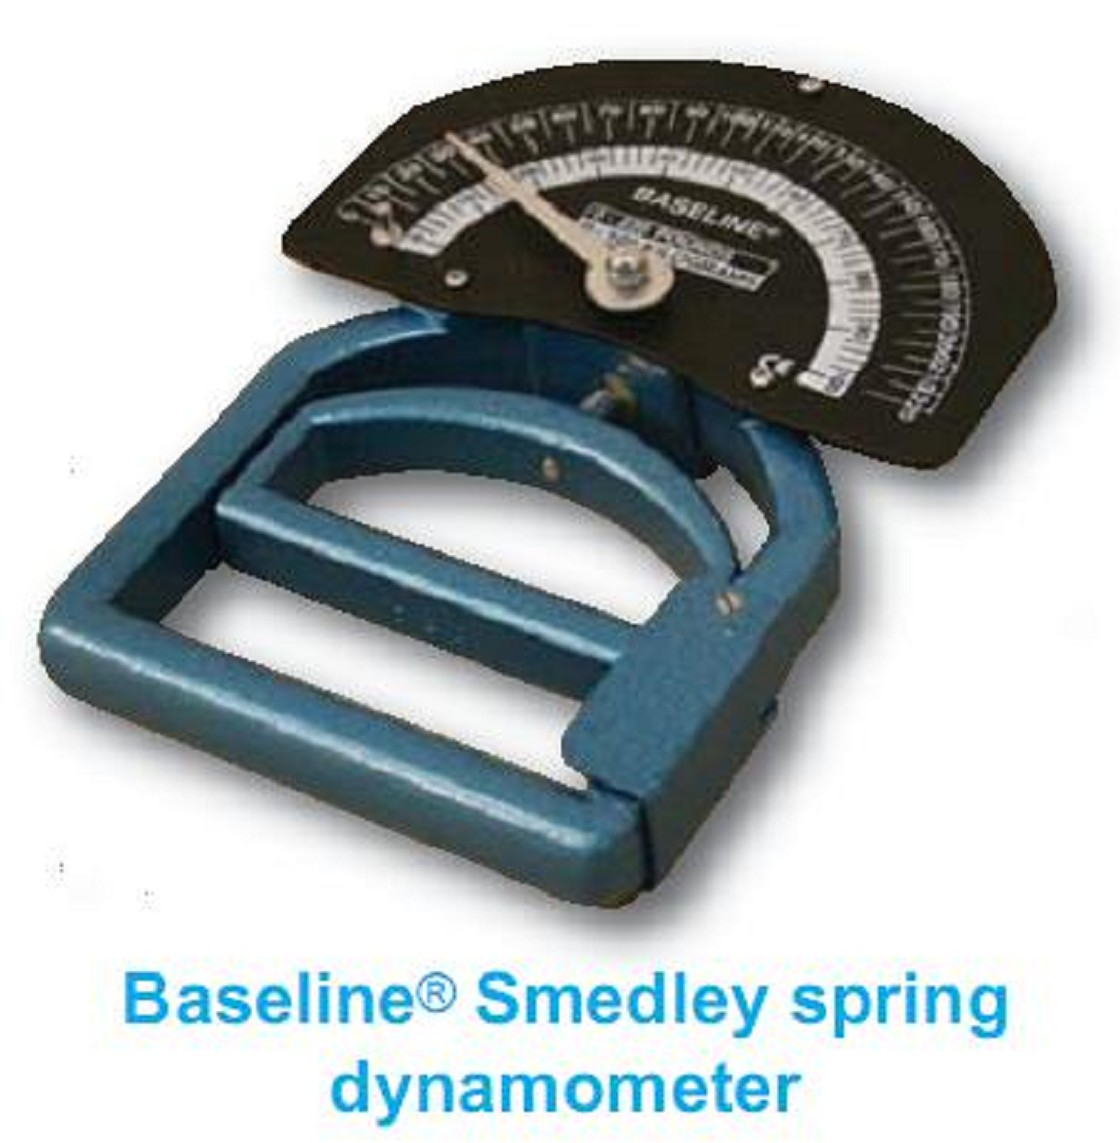 Parts Of A Dynamometer : Baseline smedley spring dynamometer